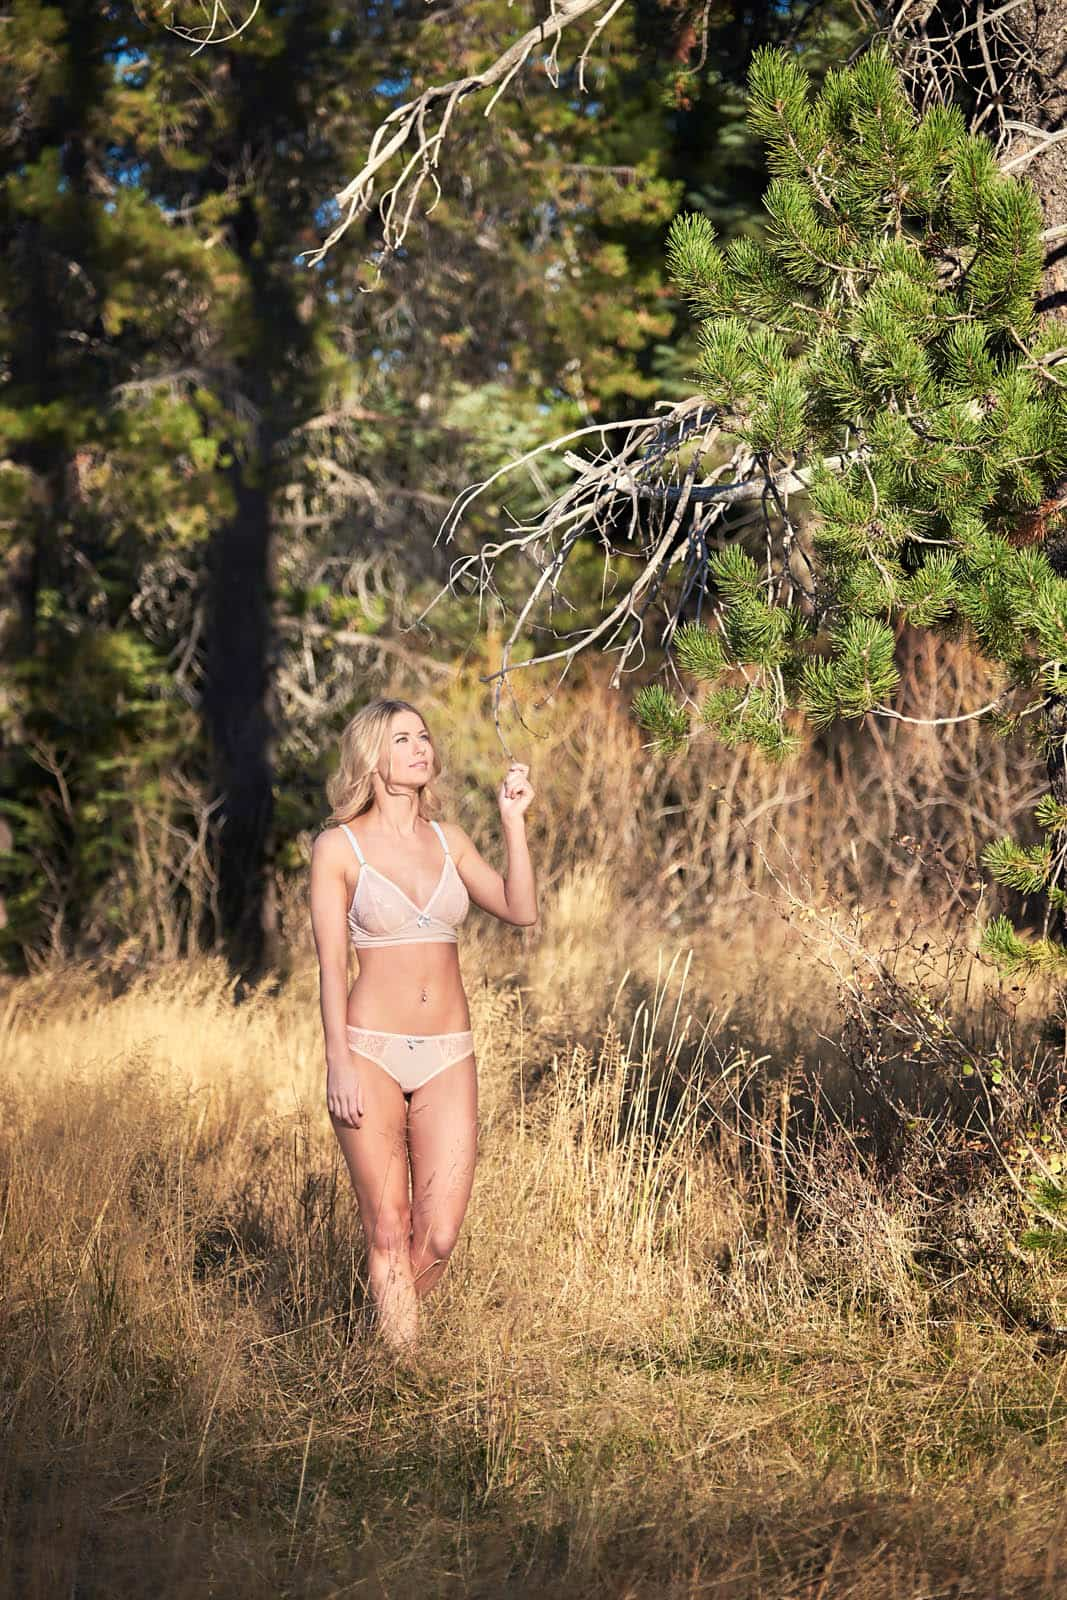 A woman in lingerie walking through a mountain meadow.